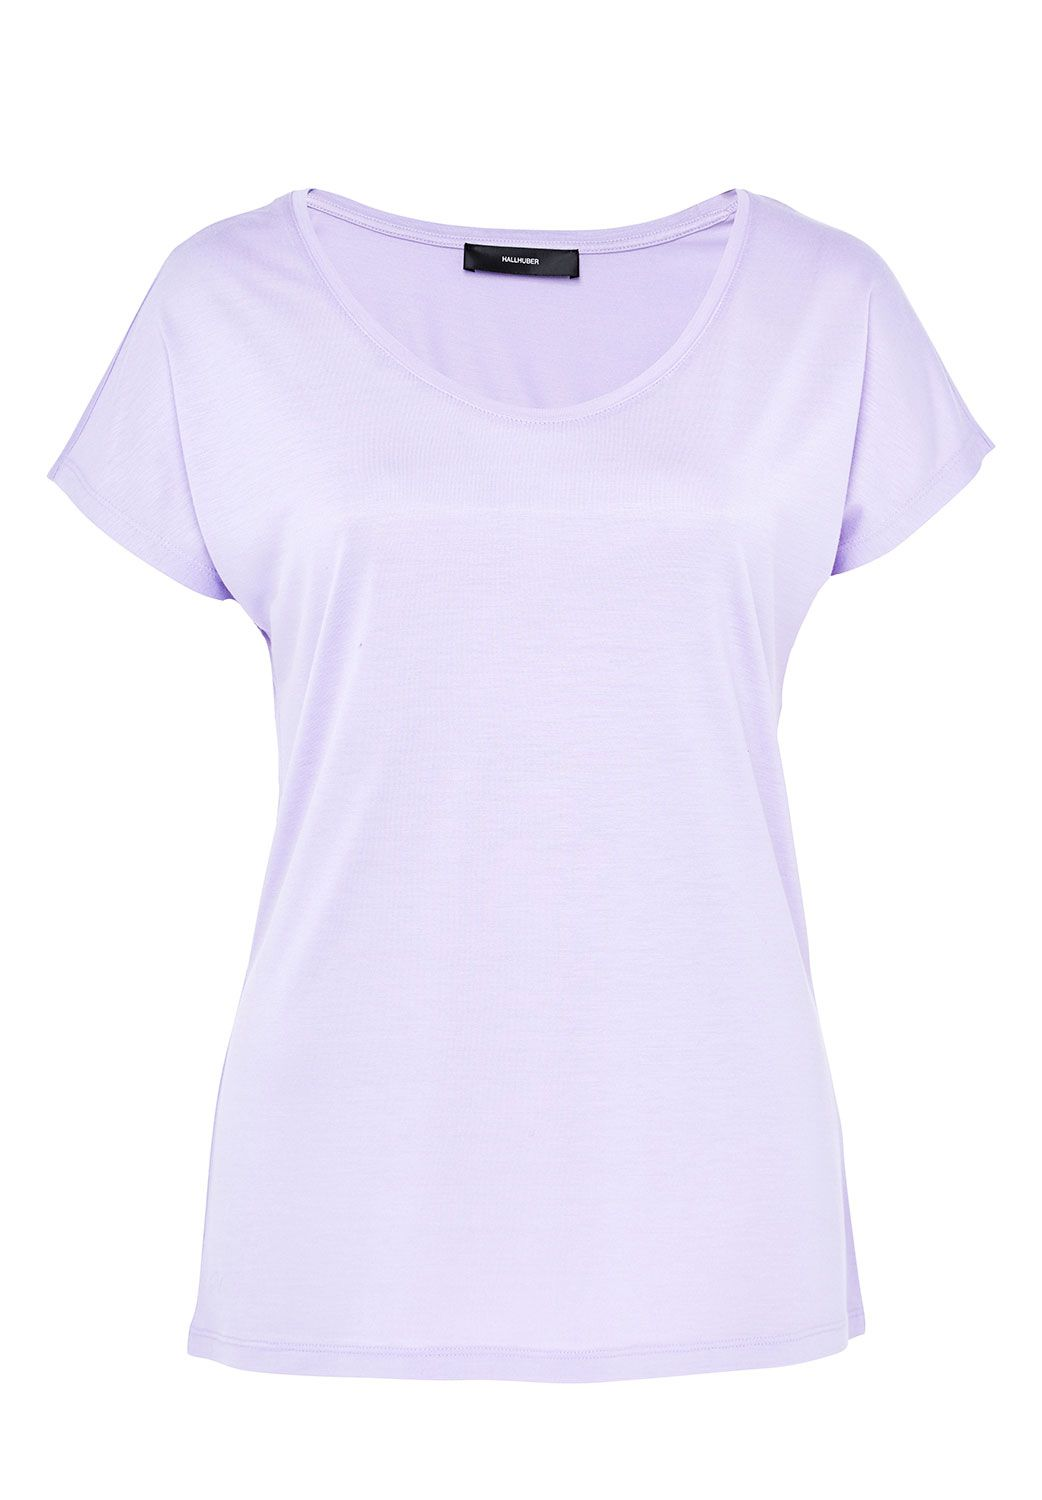 Hallhuber Basic Tee With Plunging Neckline, Lilac